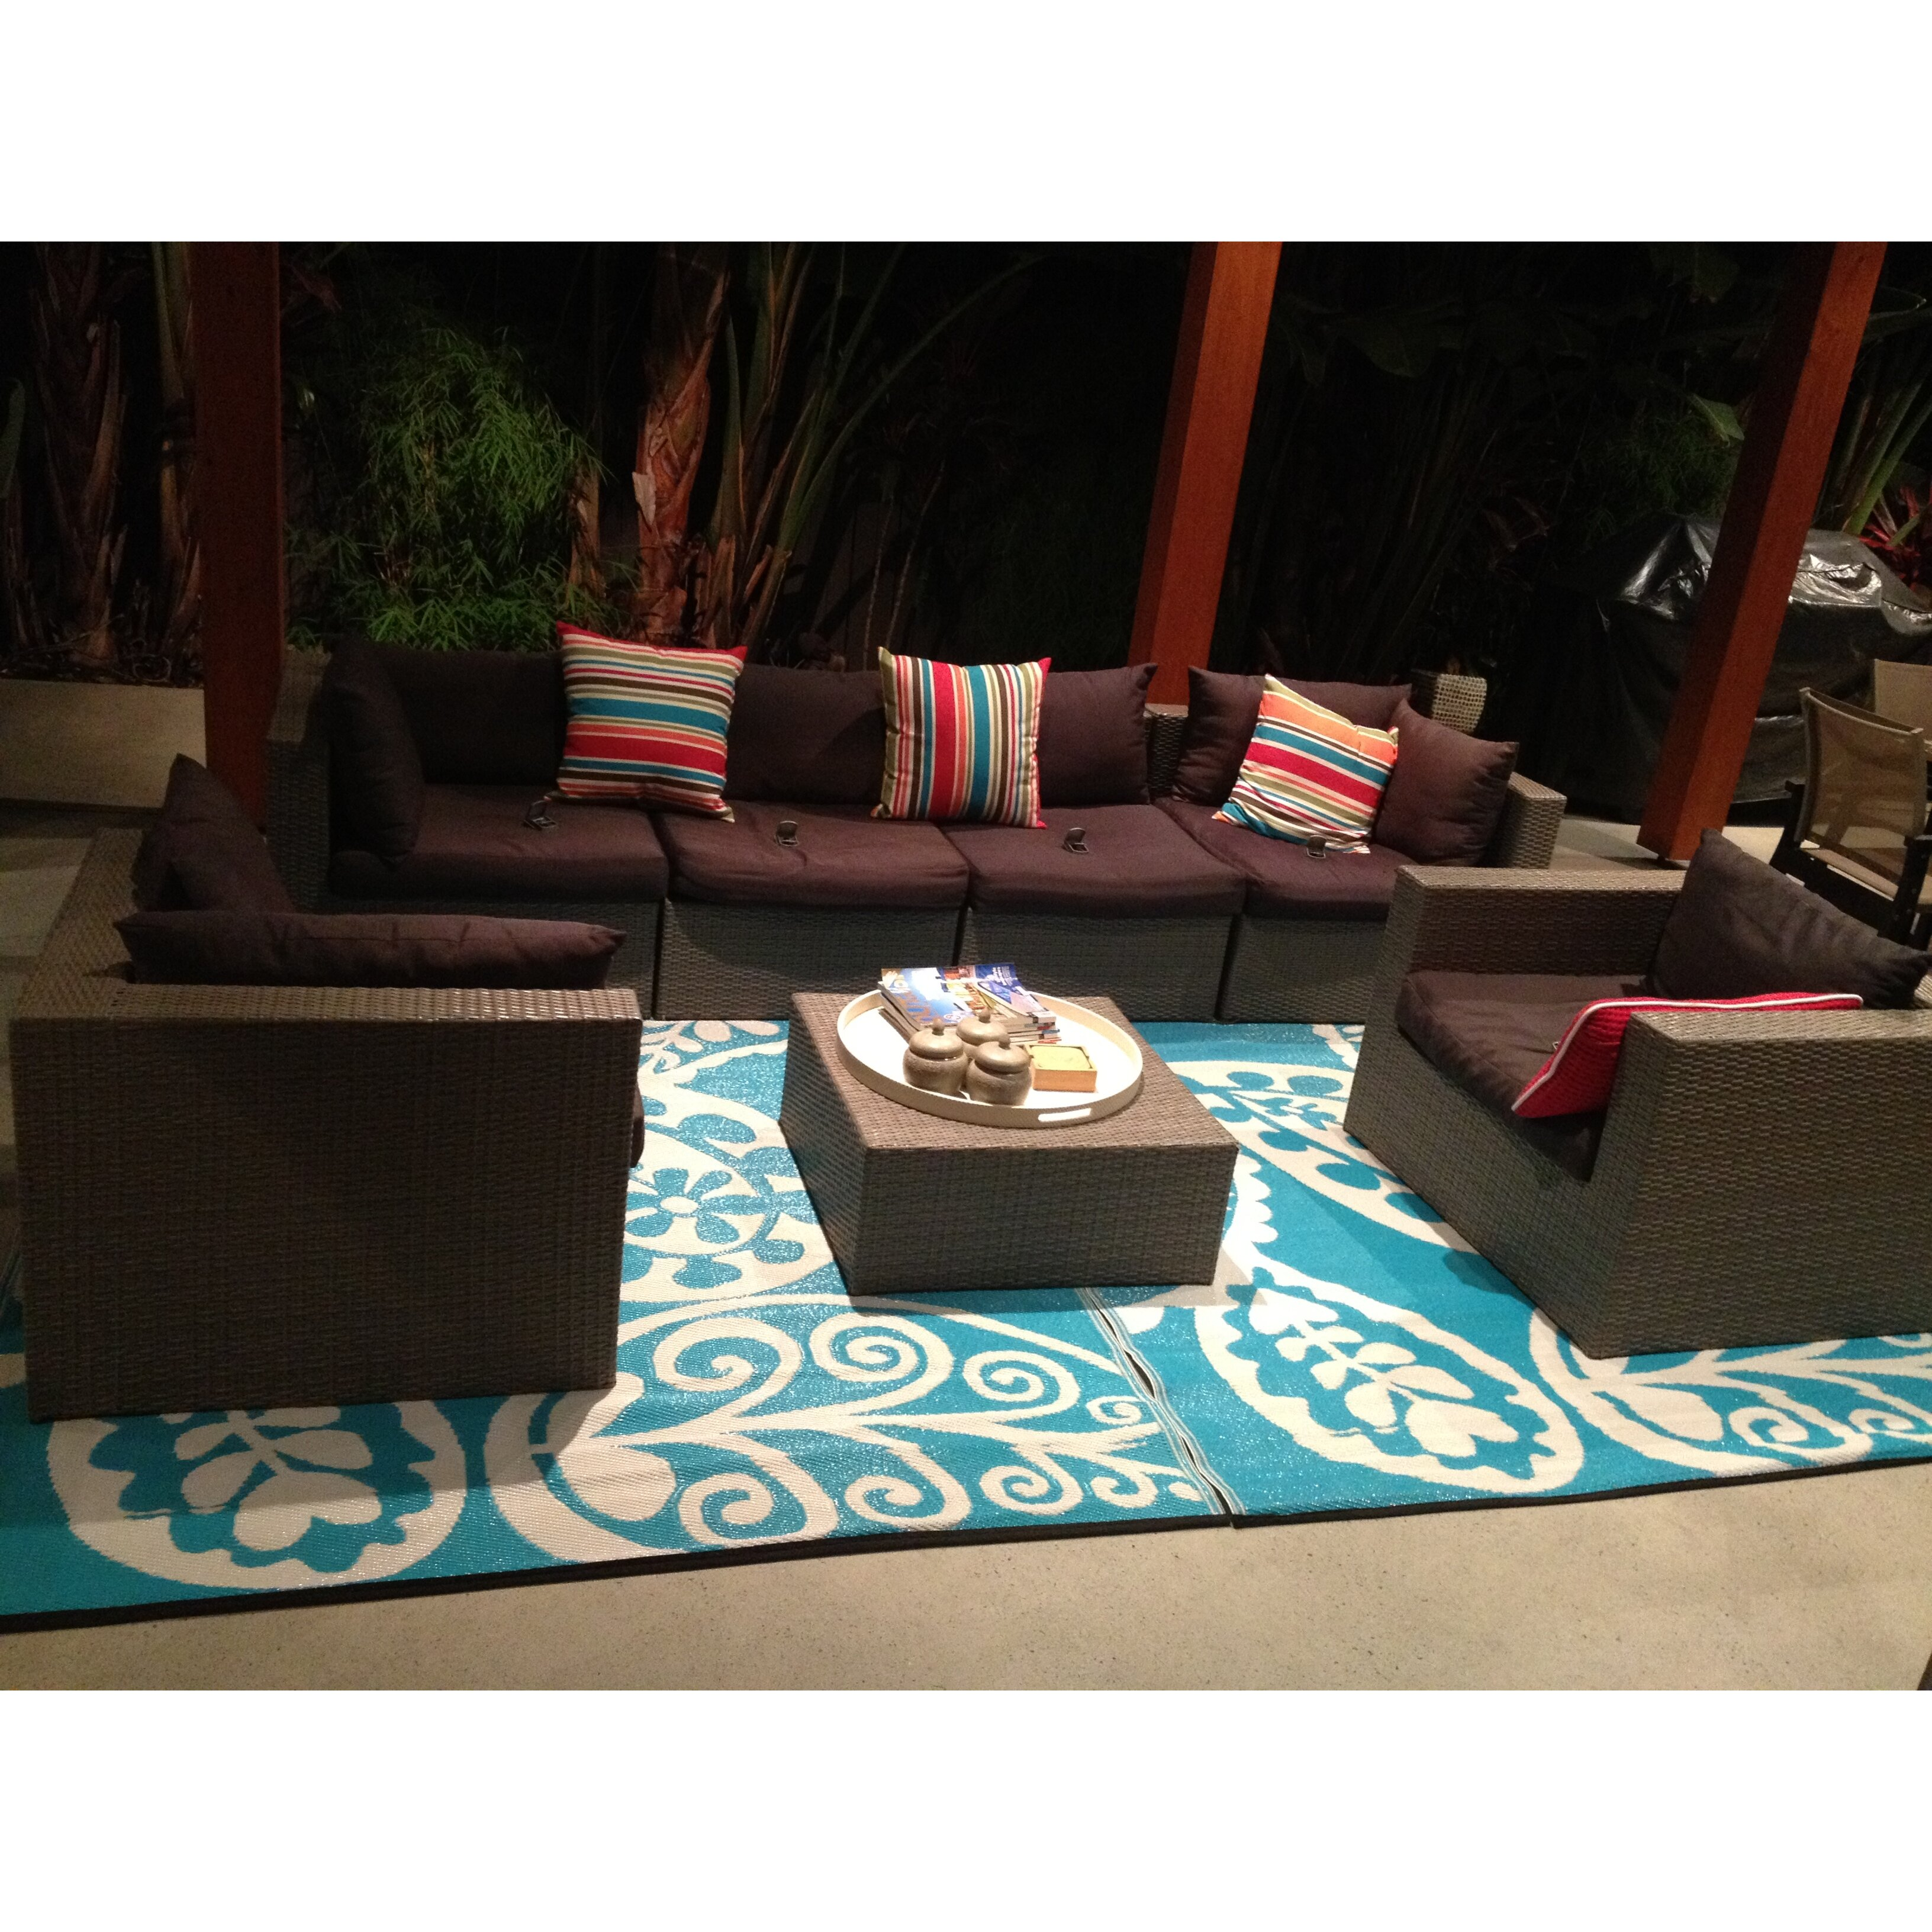 Fab Rugs Paisley River World Blue & White Indoor/Outdoor